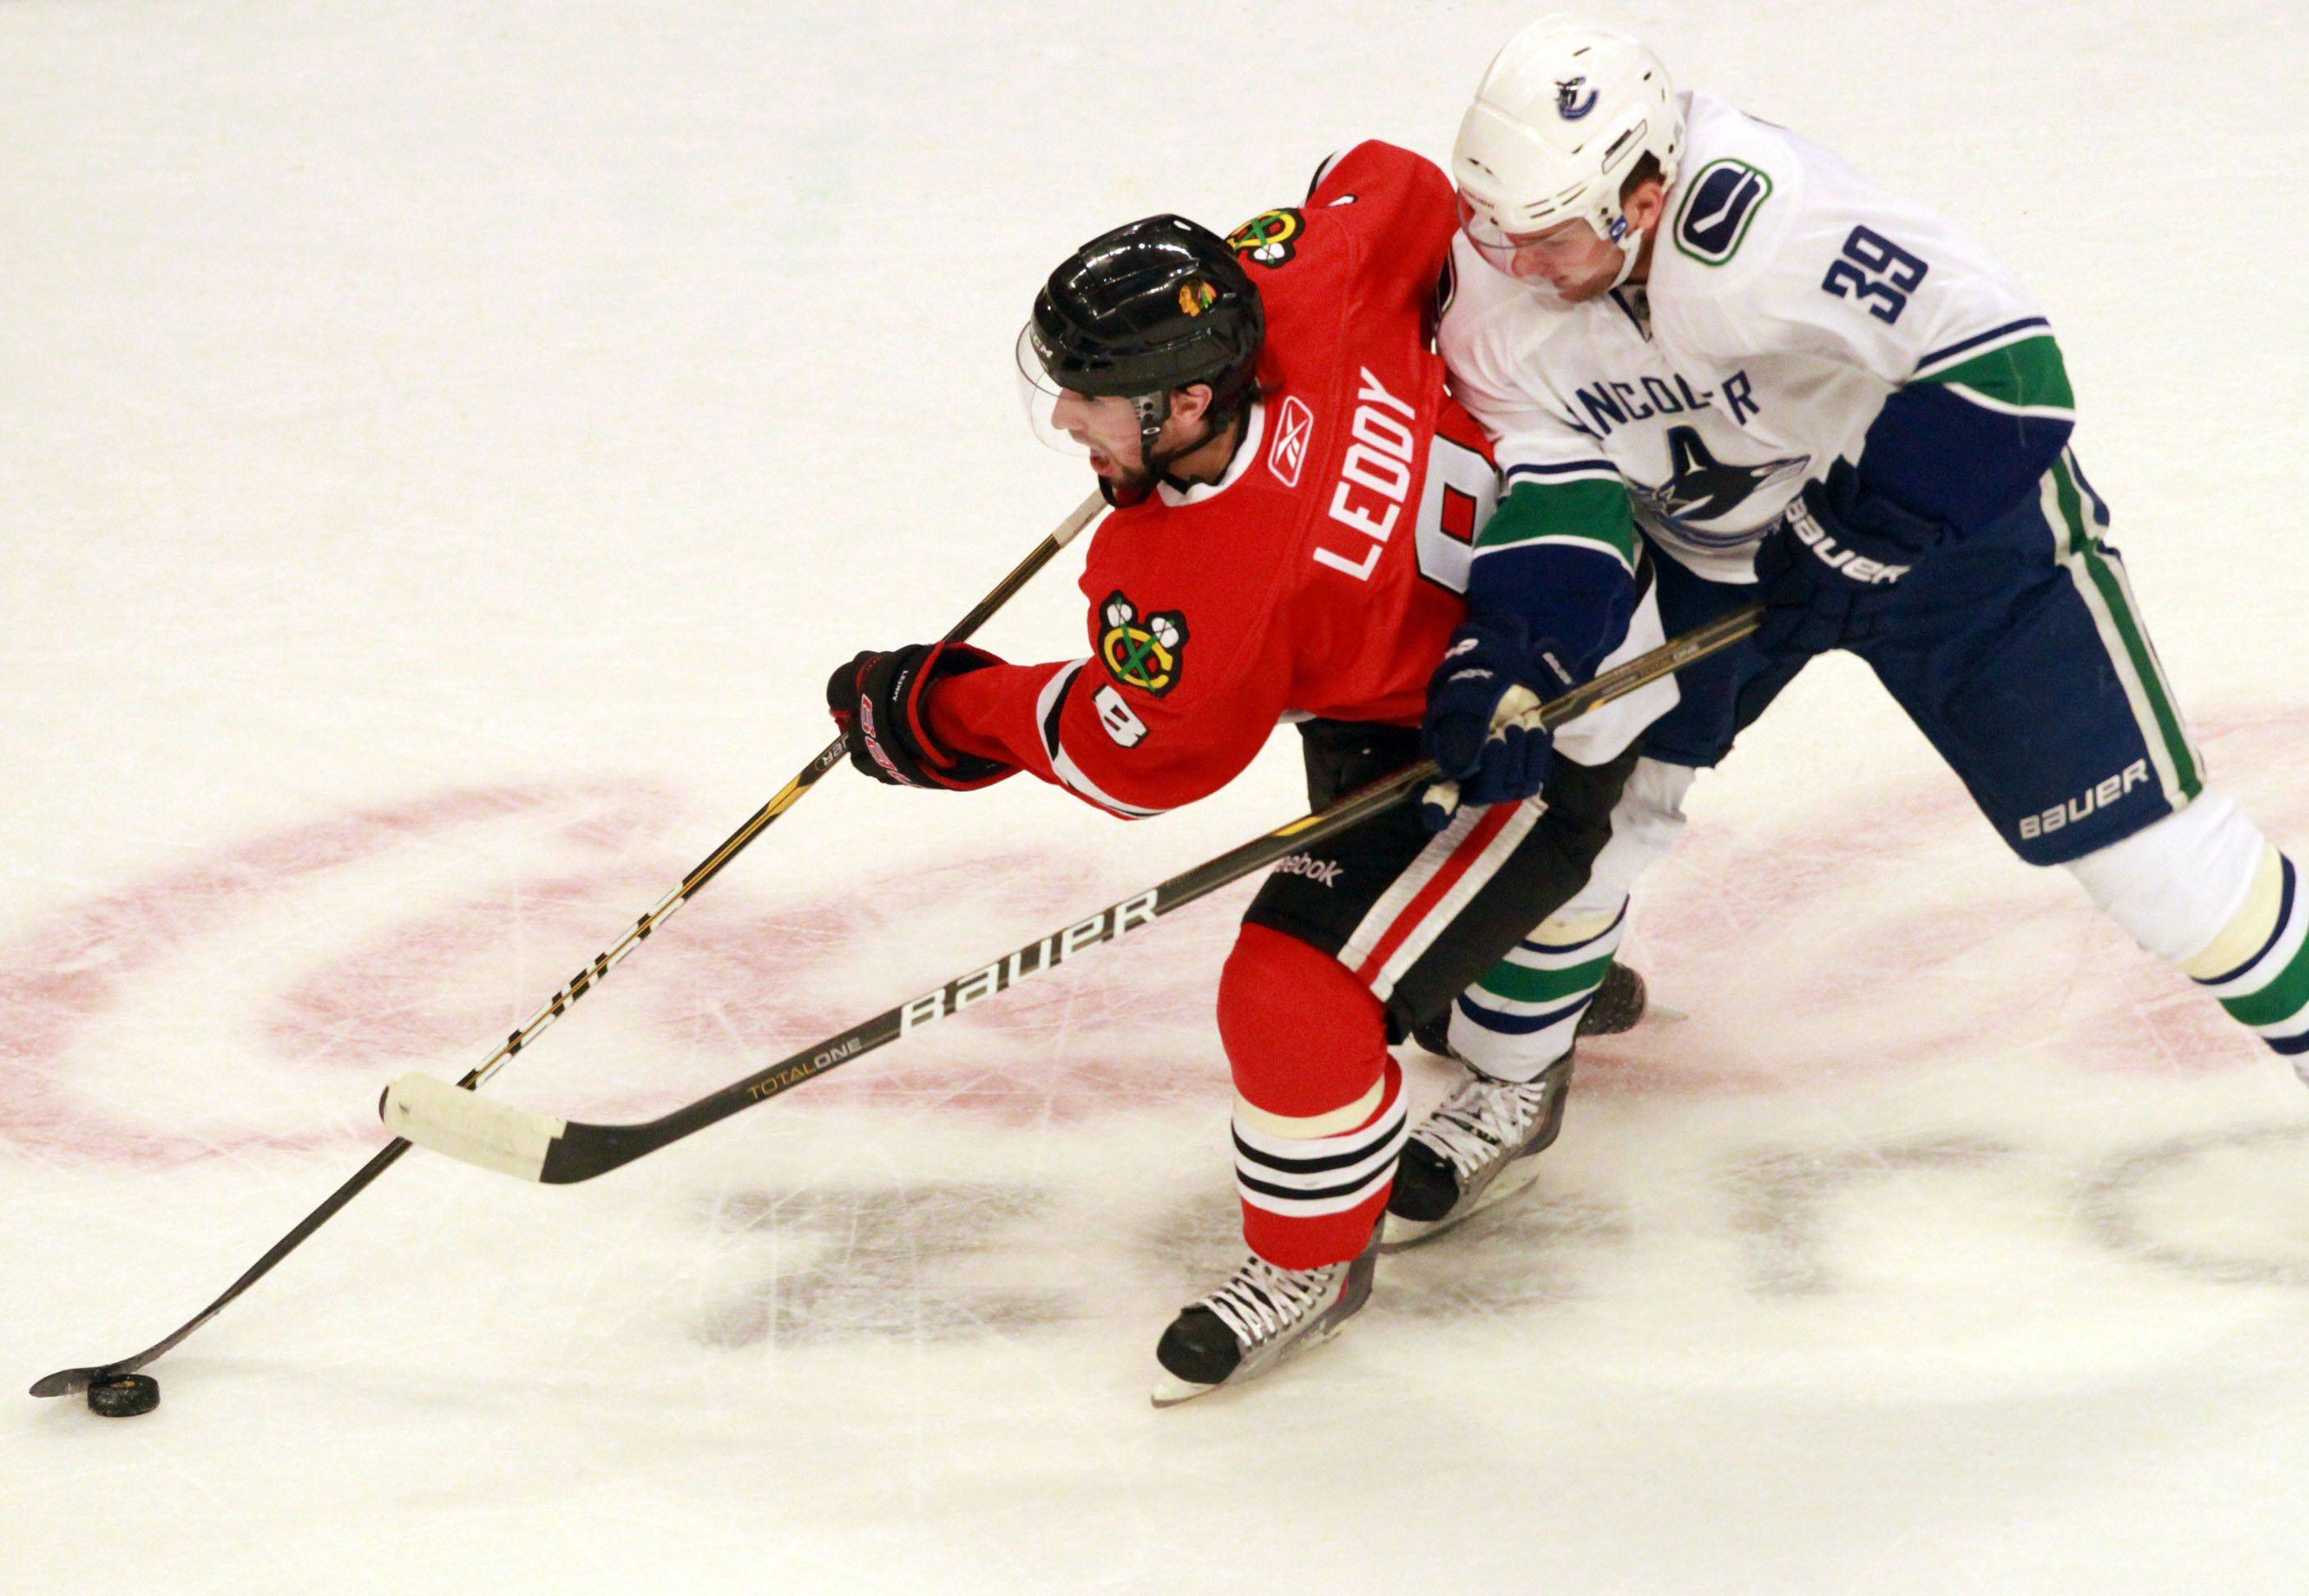 Chicago Blackhawks Nick Leddy blocks the puck from Vancouver Canucks Cody Hodgson in game 6 of the Stanley Cup quarterfinals at the United Center in Chicago on Sunday.